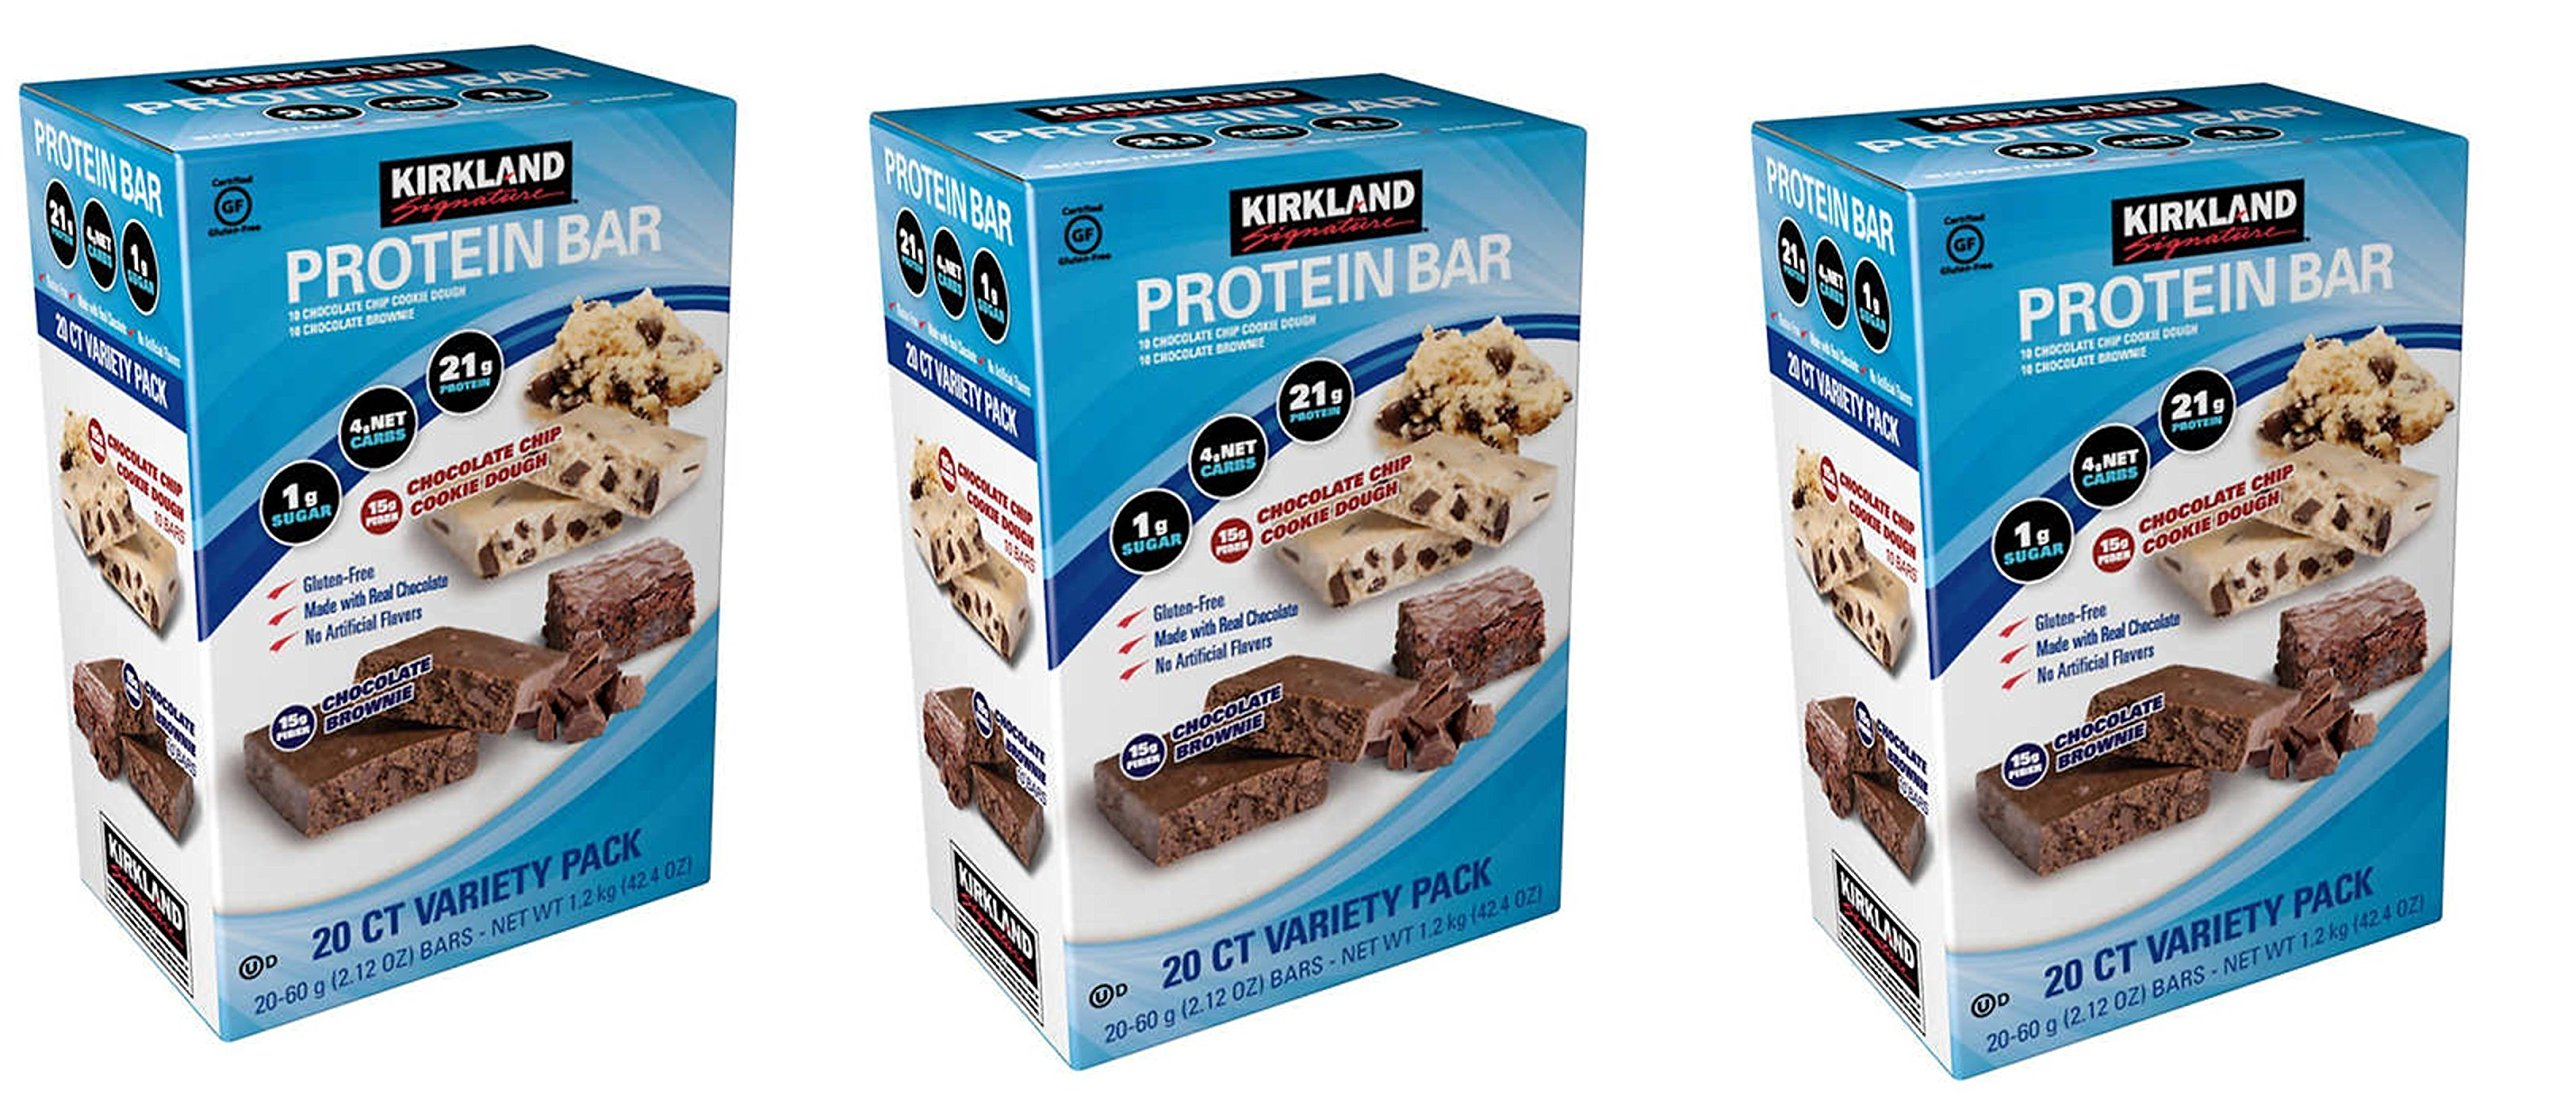 Kirkland Signature Variety Protein Bars 20 count, 21G Of Protein, 4G Of Carbs and 1G Of Sugar, Chocolate Brownie and Chocolate Chip Cookie Dough, 3 Boxes